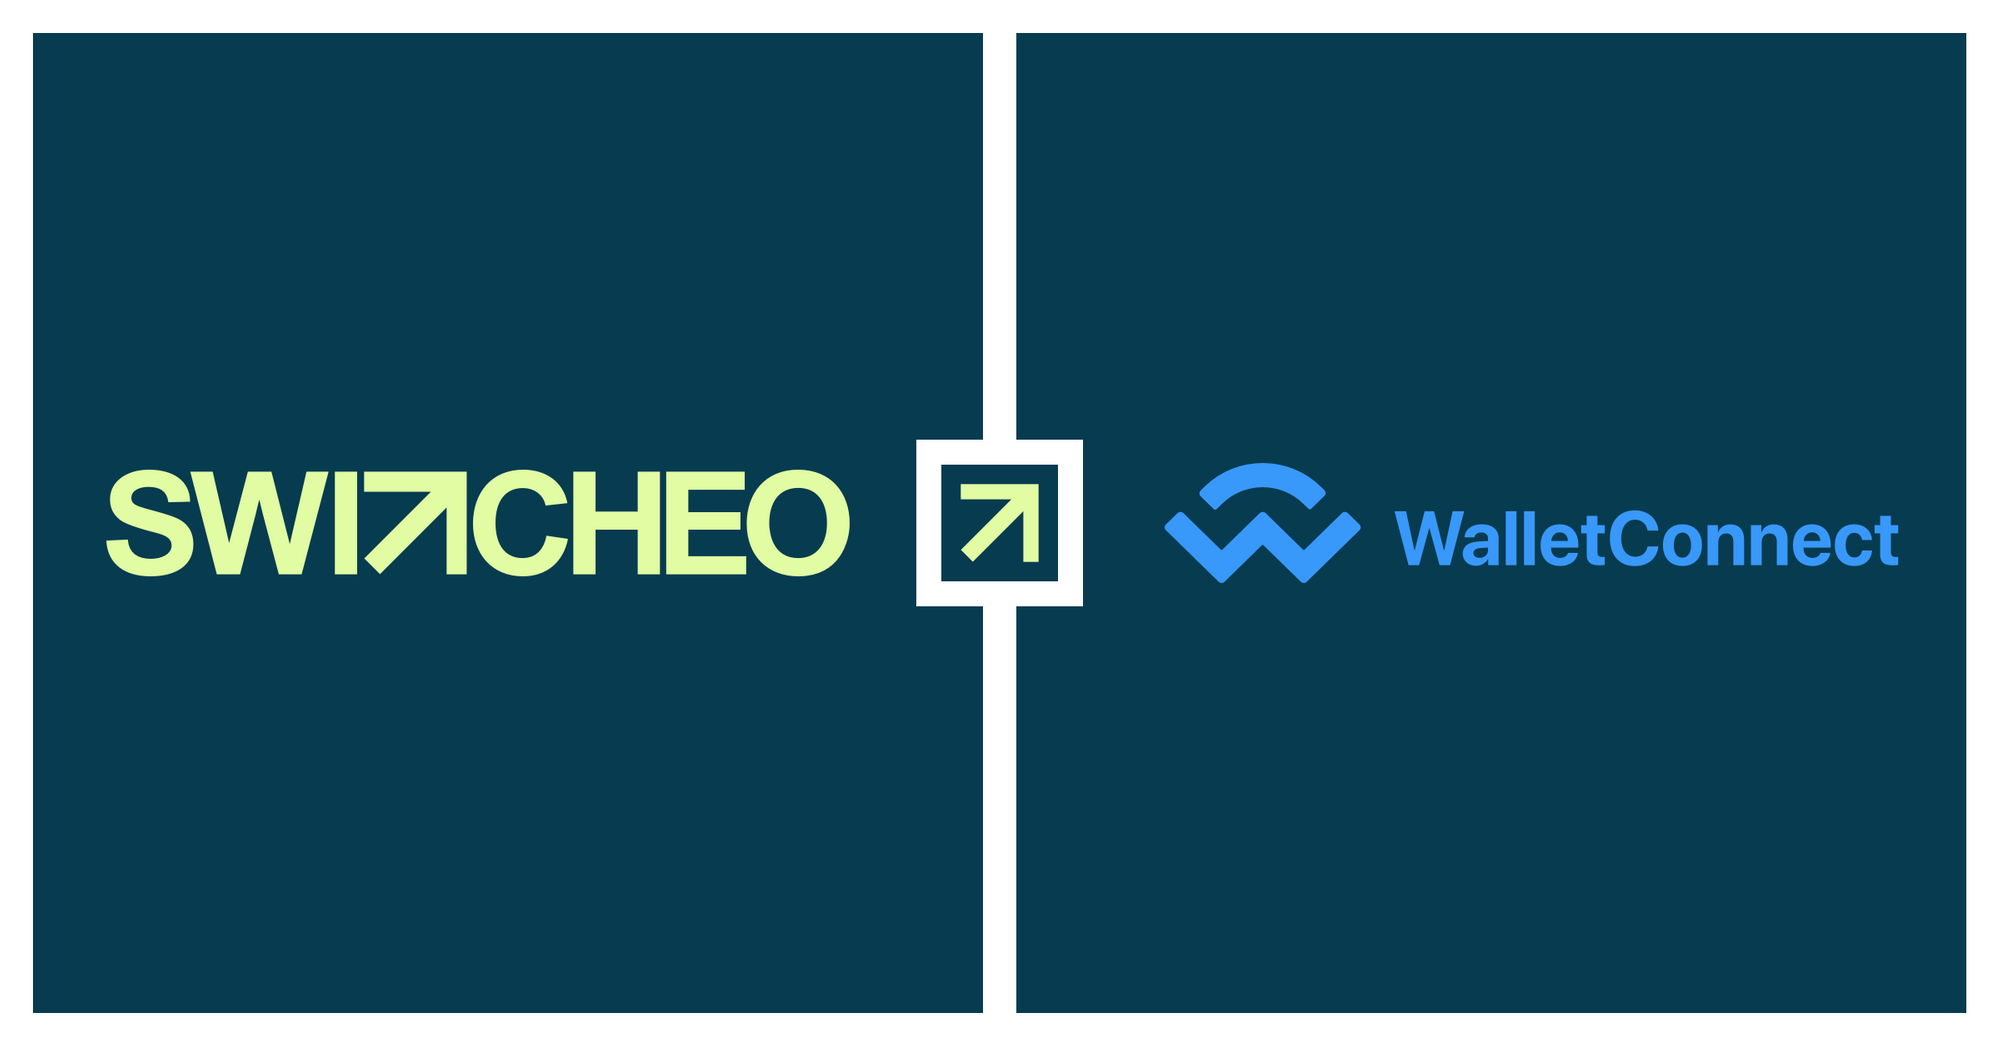 Switcheo Adds Integration With WalletConnect